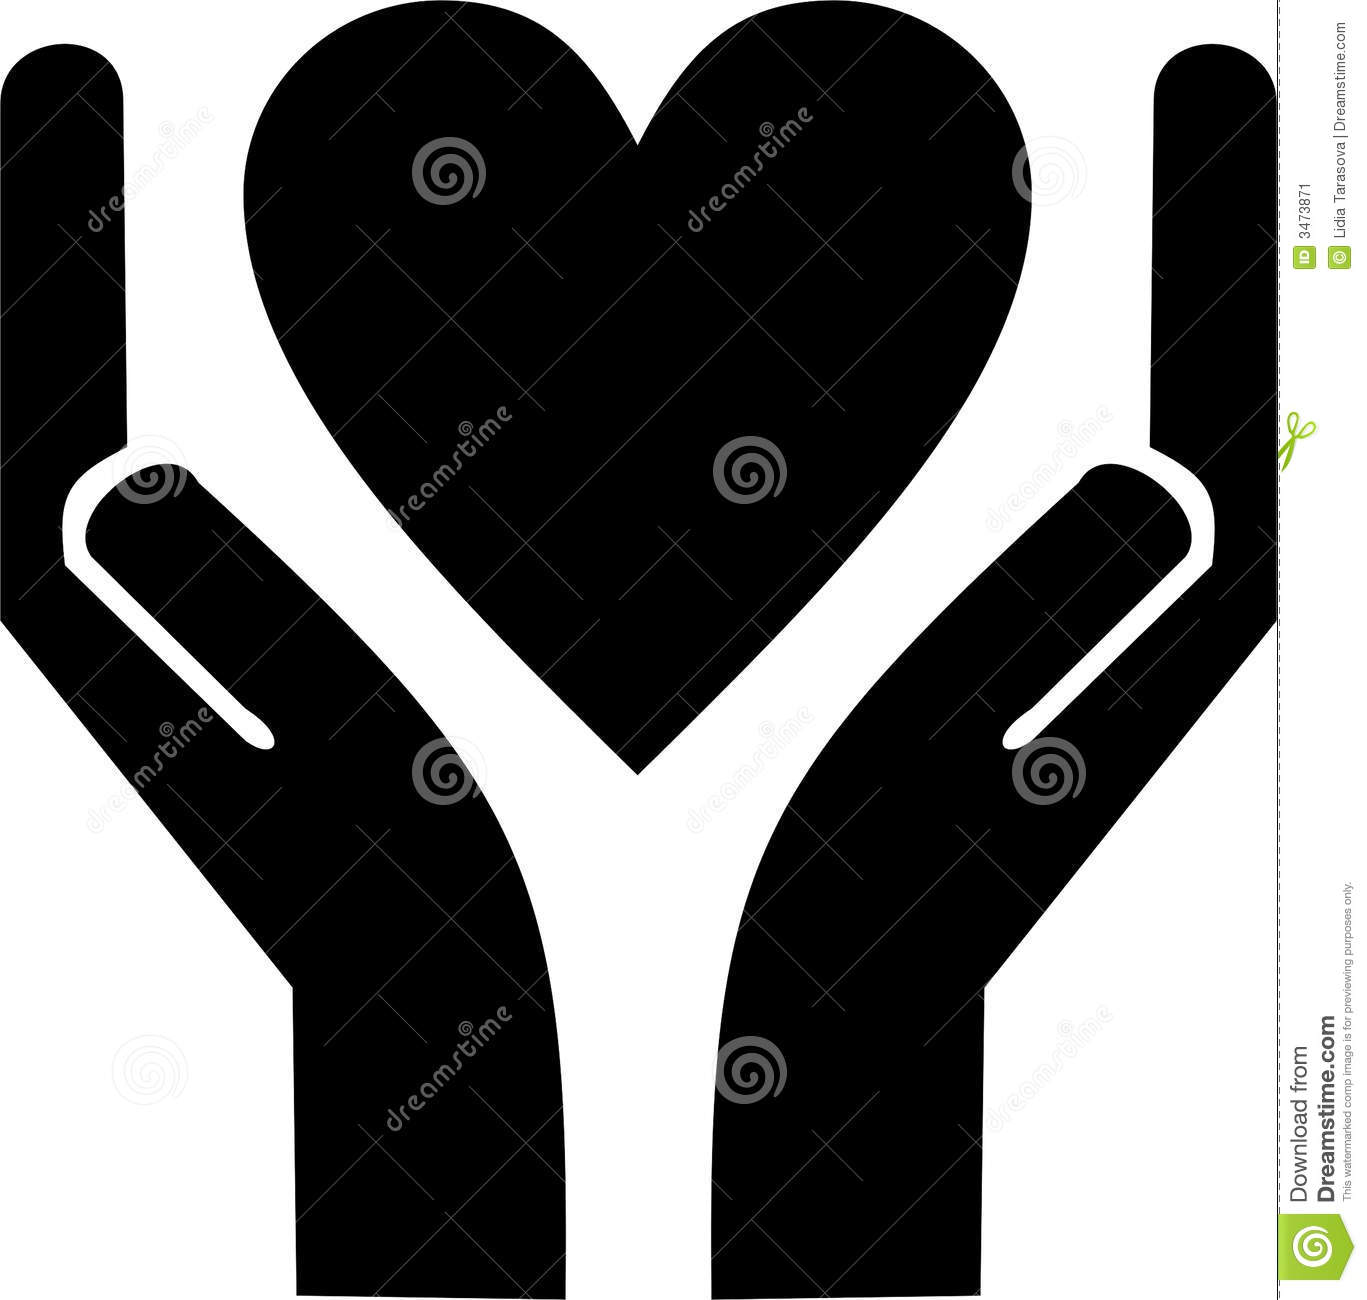 Caring Hands Stock Illustrations.